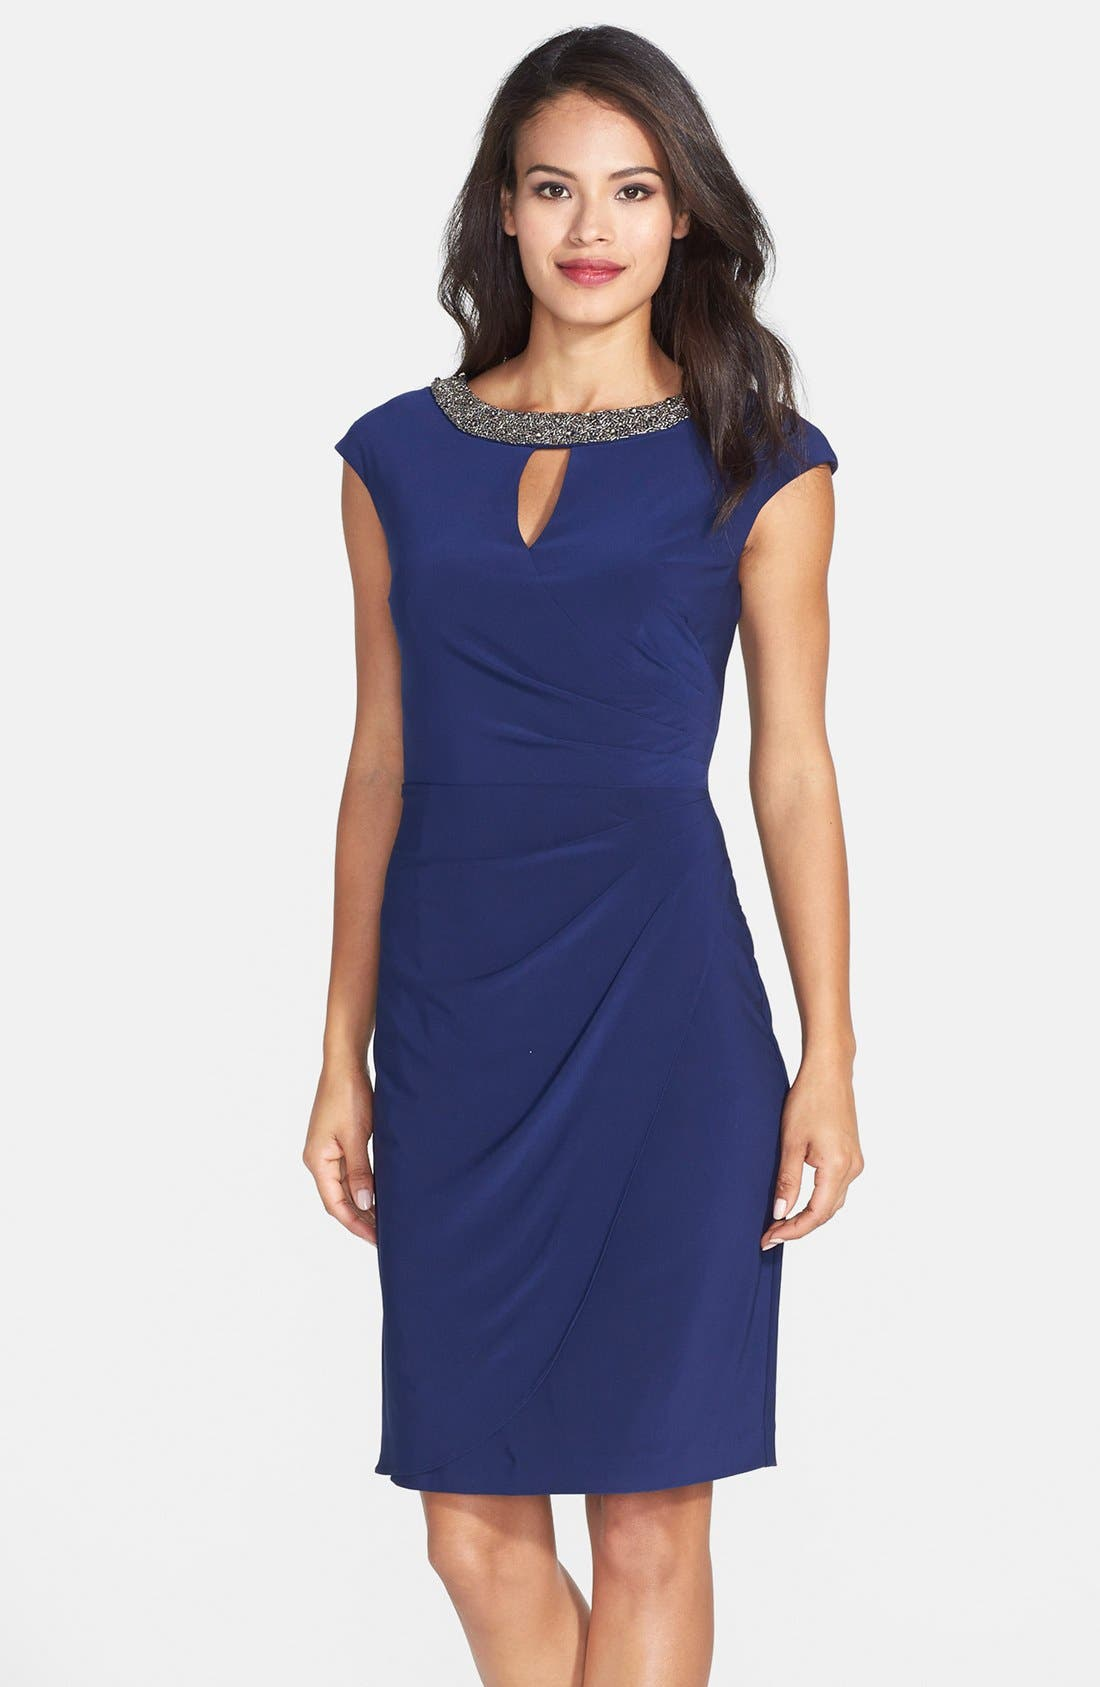 Alternate Image 1 Selected - Alex Evenings Embellished Neck Jersey Sheath Dress (Regular & Petite)